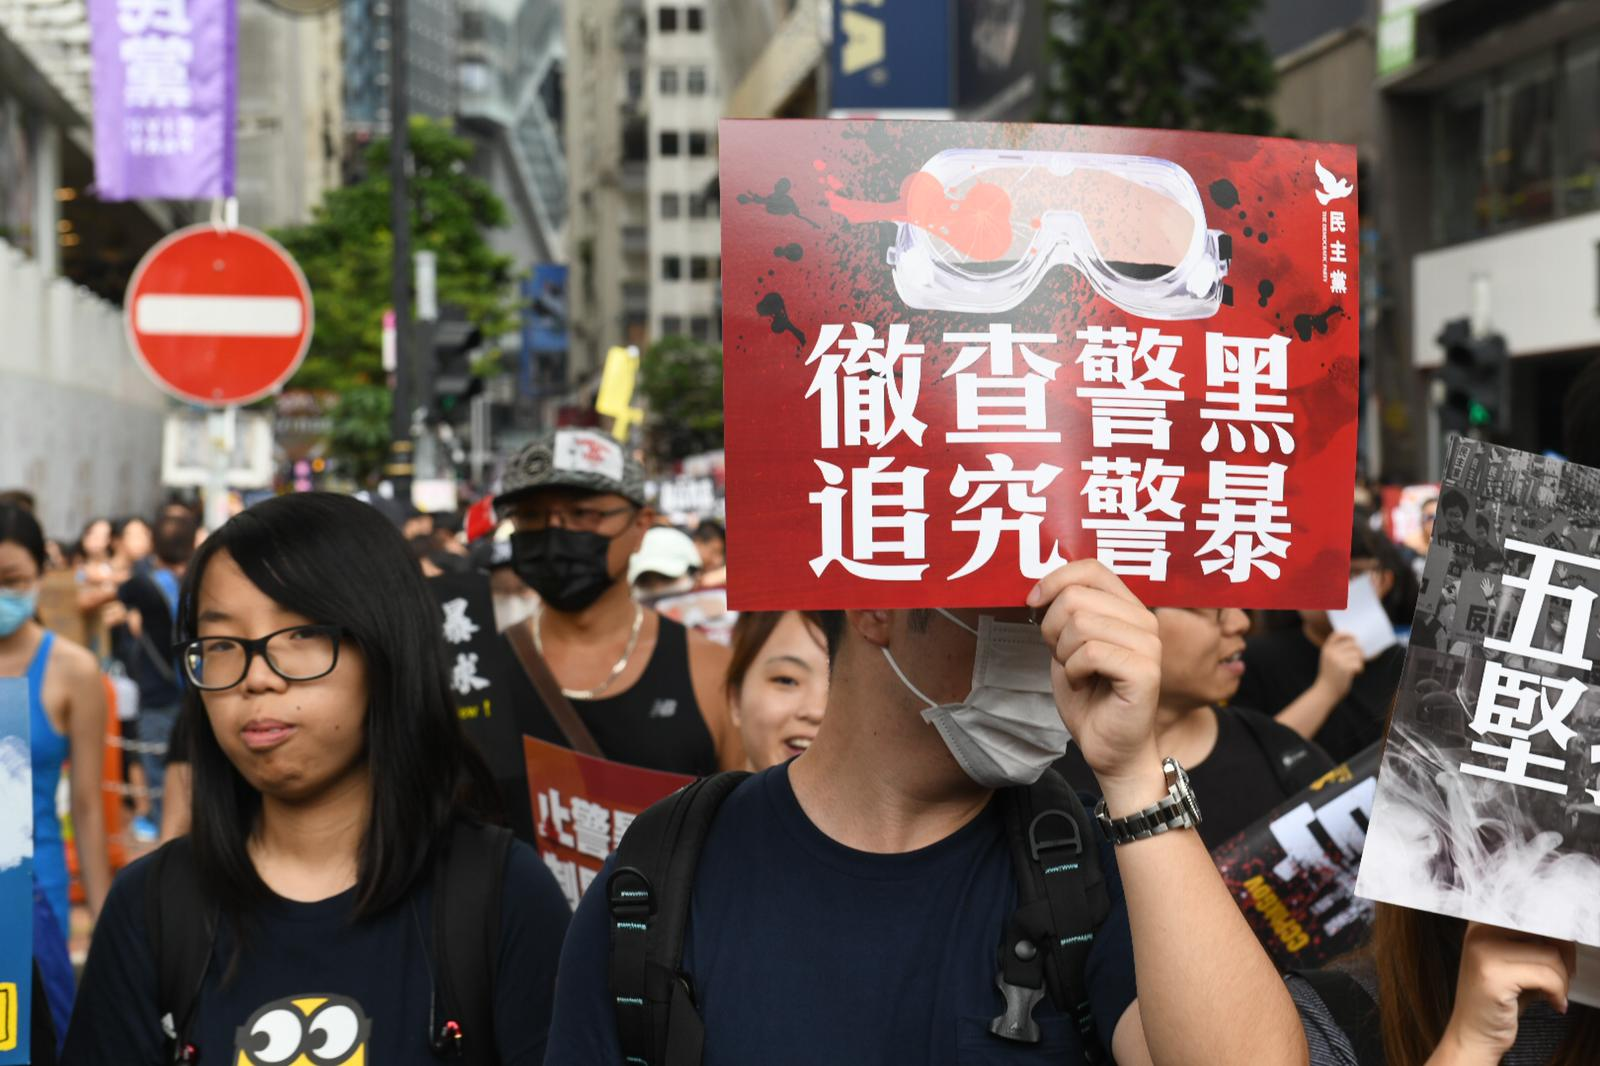 Protesters hold signs as part of a pro-democracy march in Victoria Park on August 18, 2019.